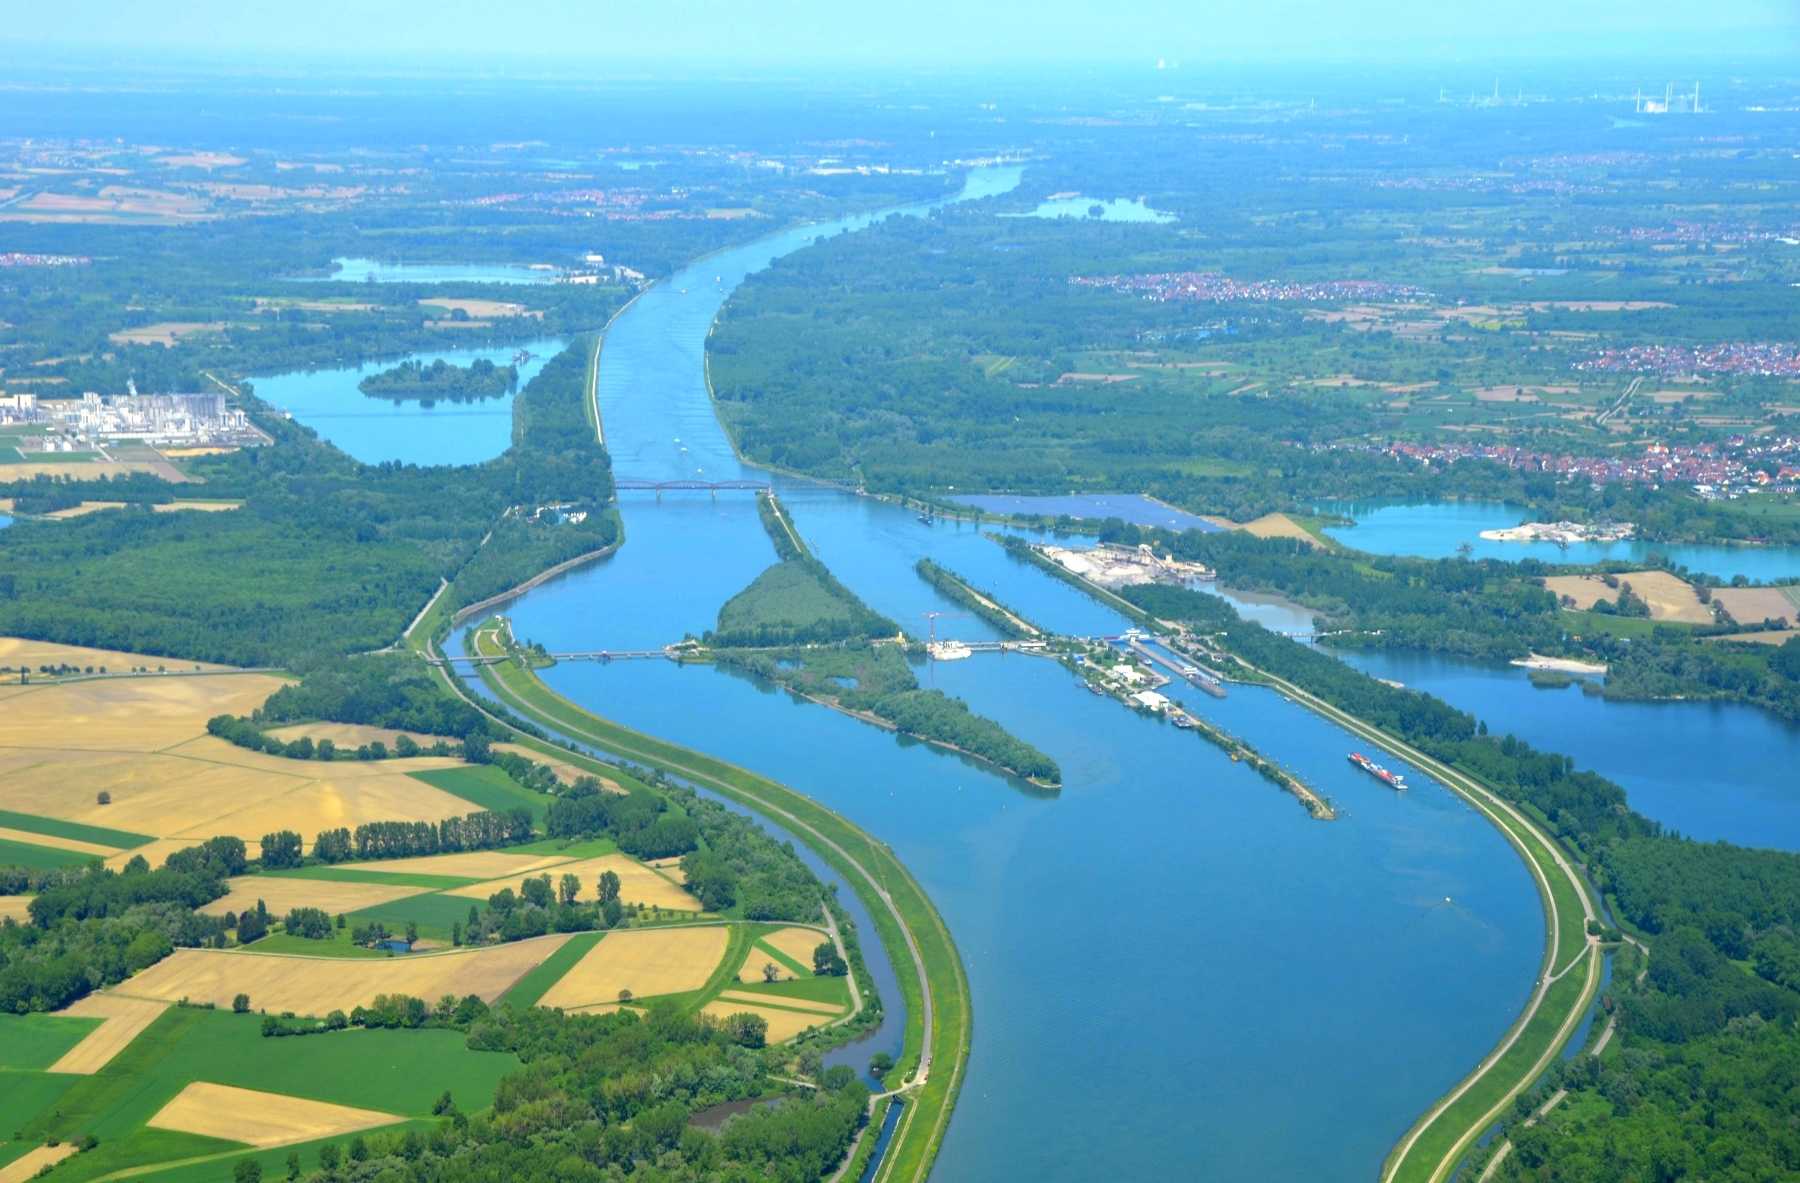 Rhine Franco-German border